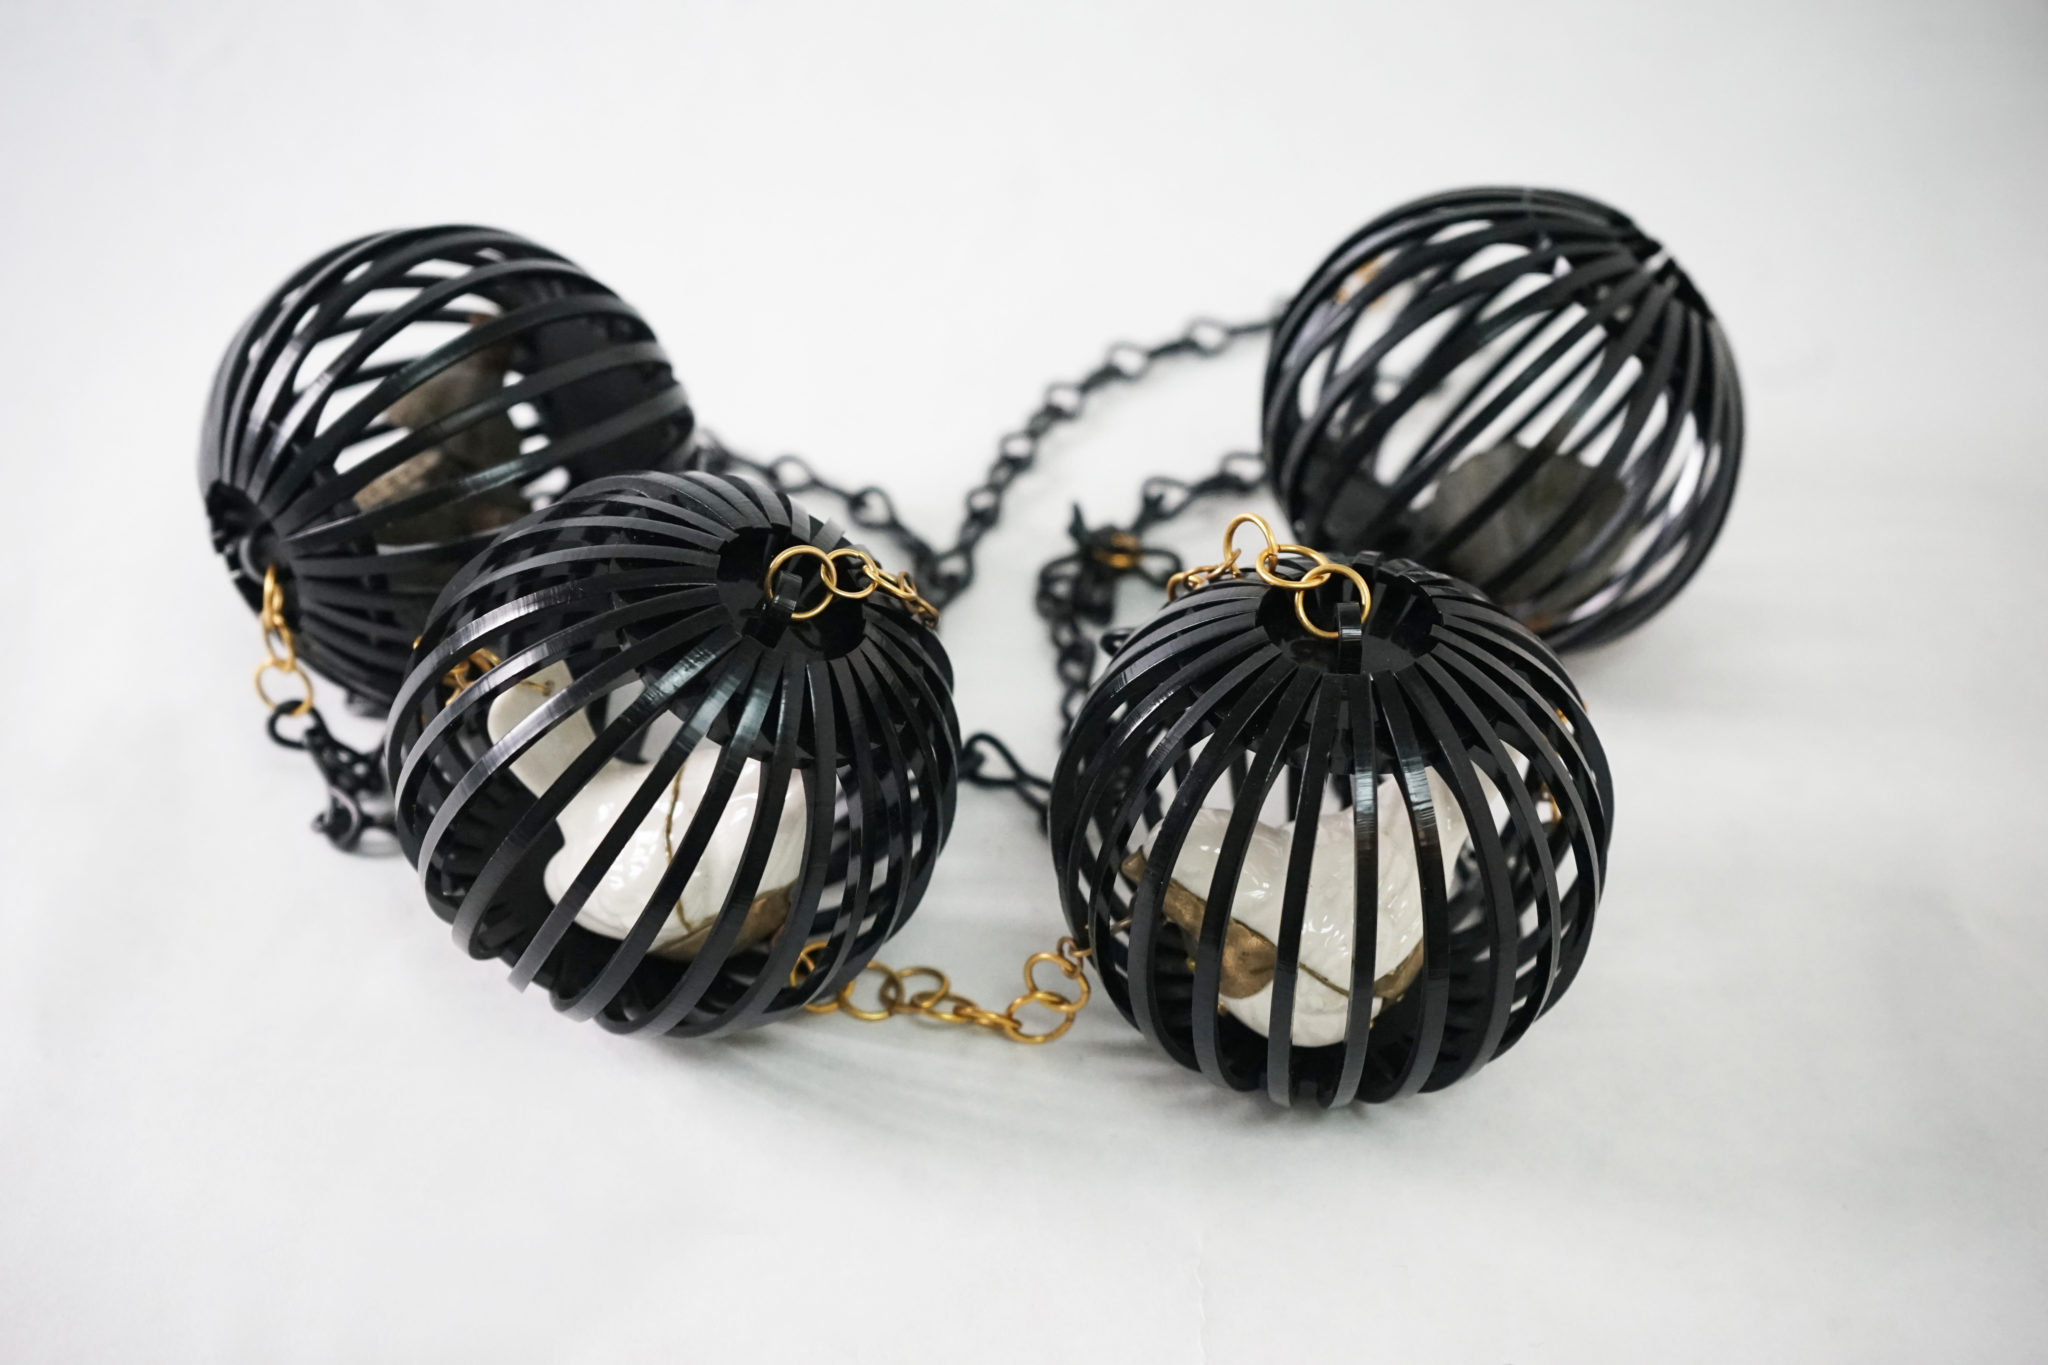 Necklace by Academy student Yiyang Wang